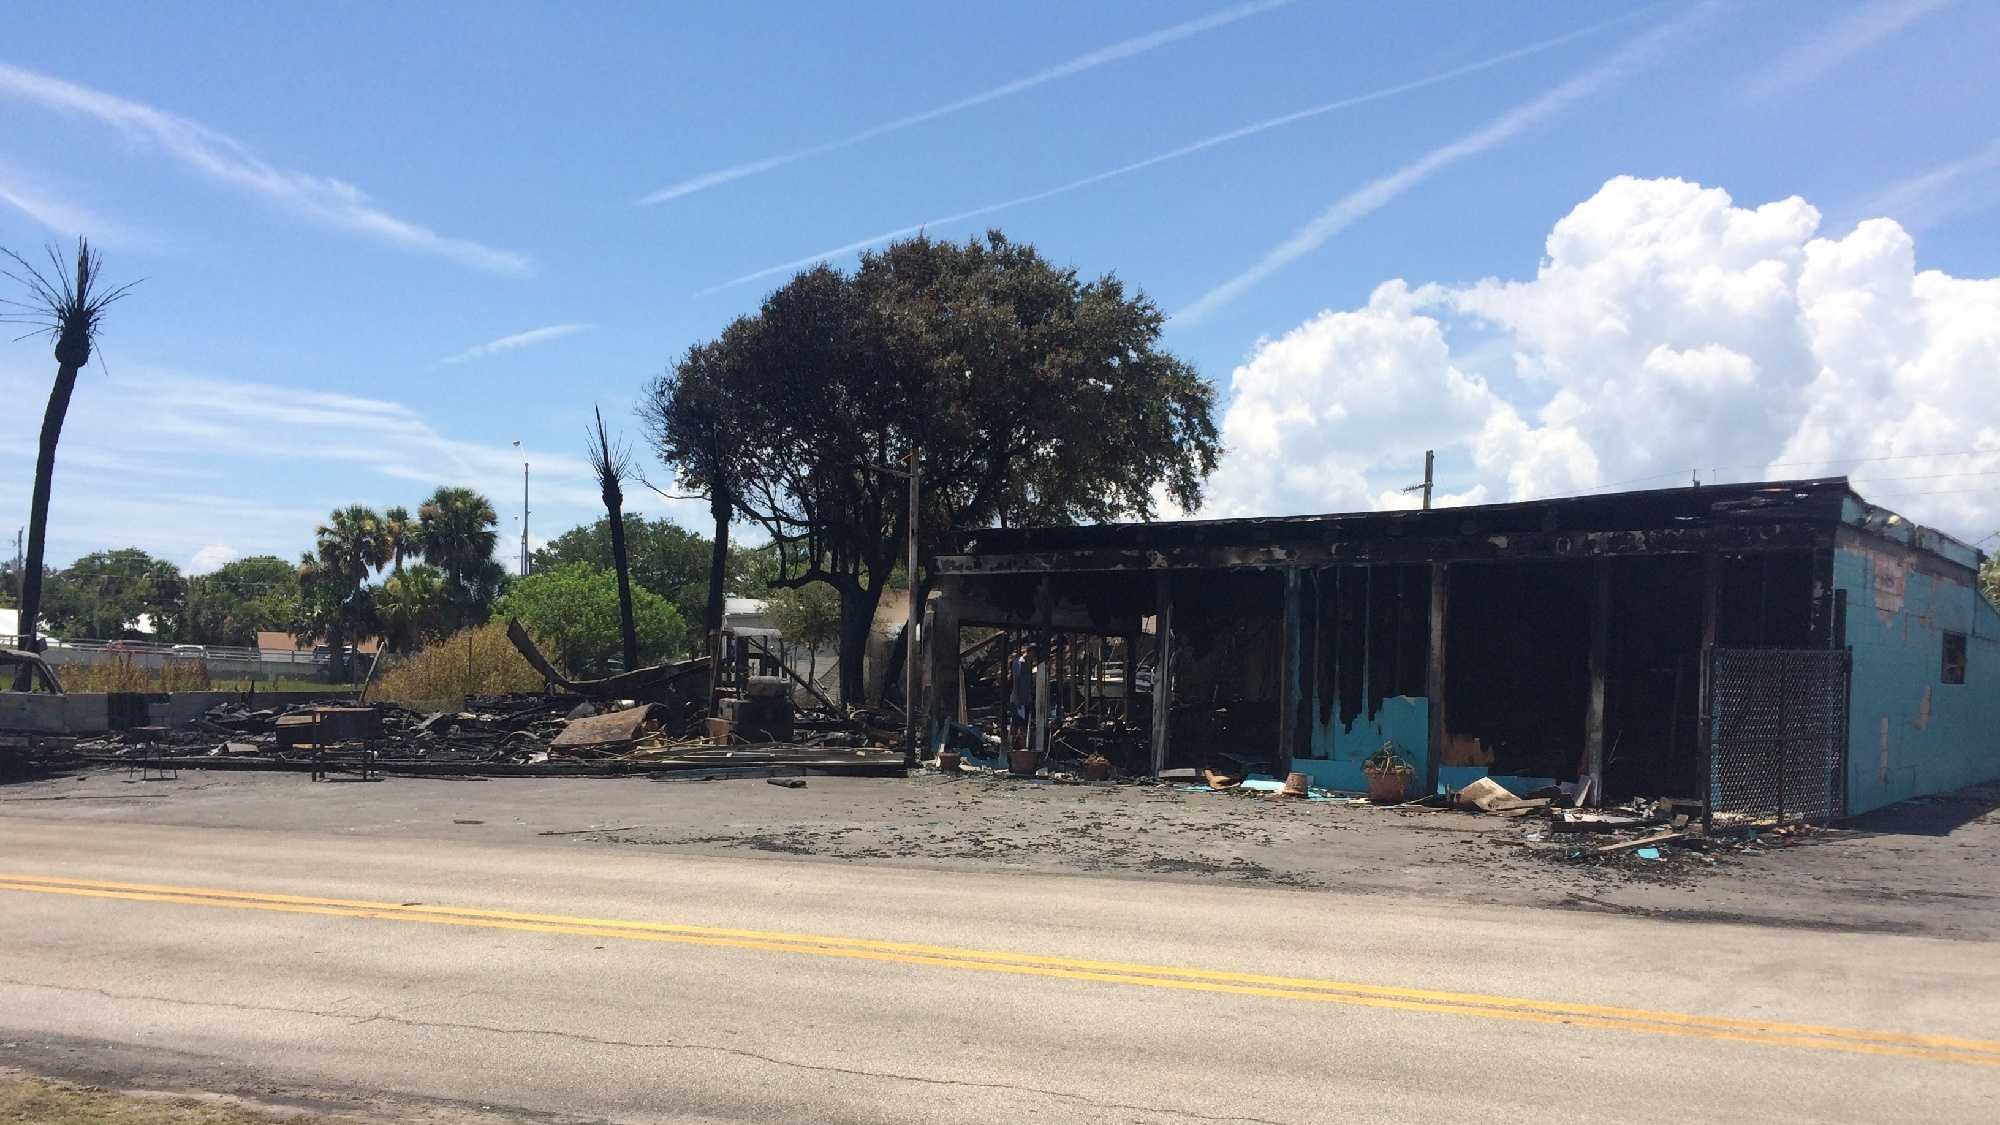 The state fire marshal is investigating a suspicious fire that destroyed Action Jet Ski Rentals in Daytona Beach.